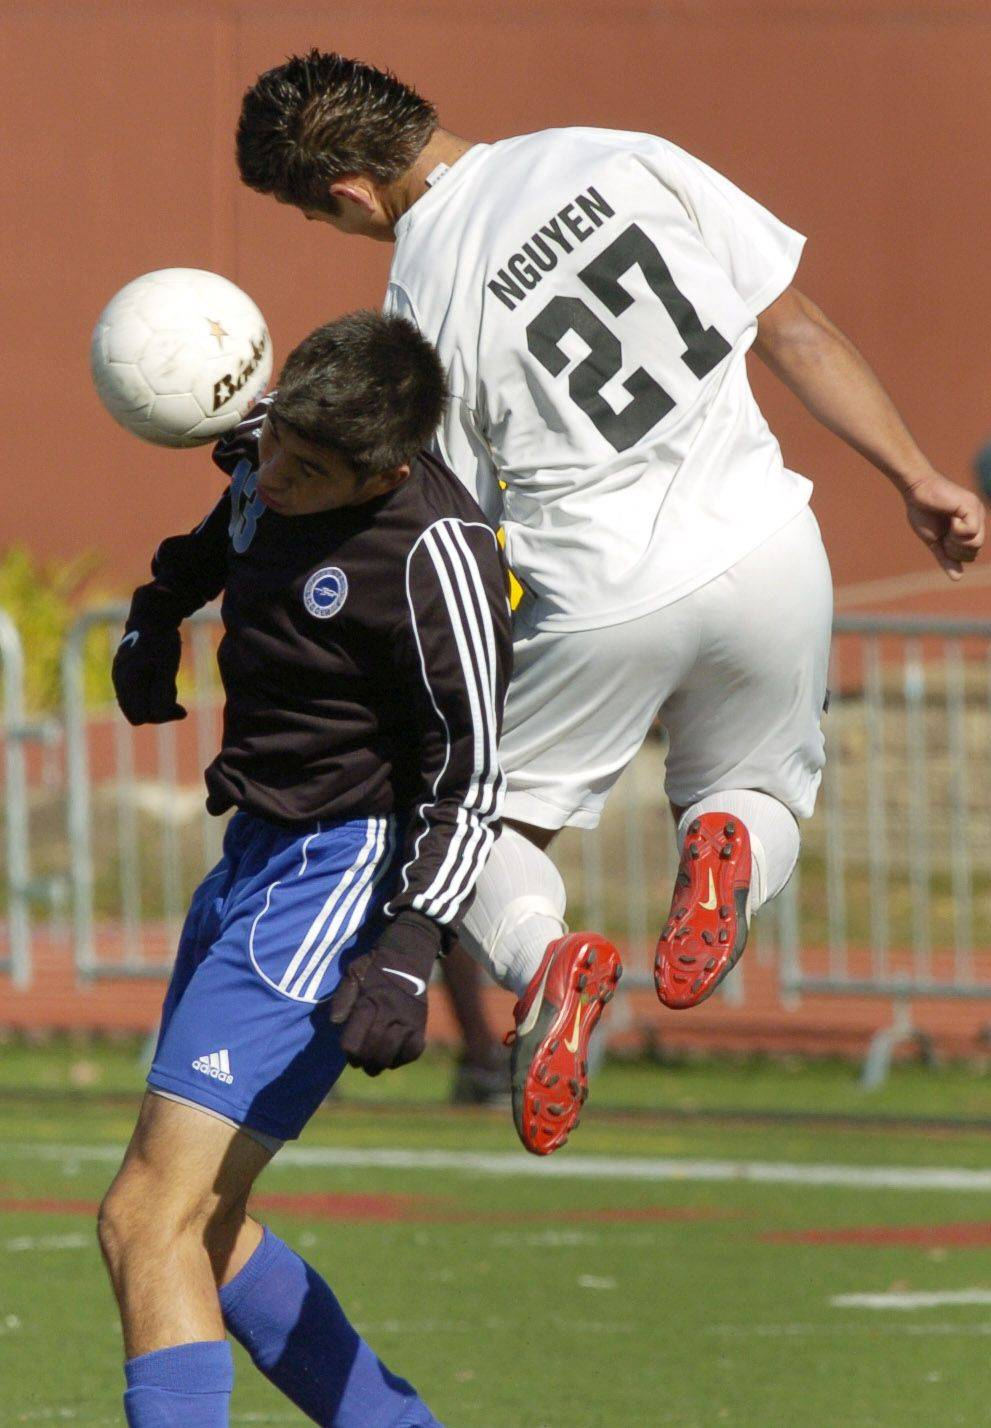 Burlington Central's Erick Uribe, left, and Ridgewood's Maciej Nguyen make contact.